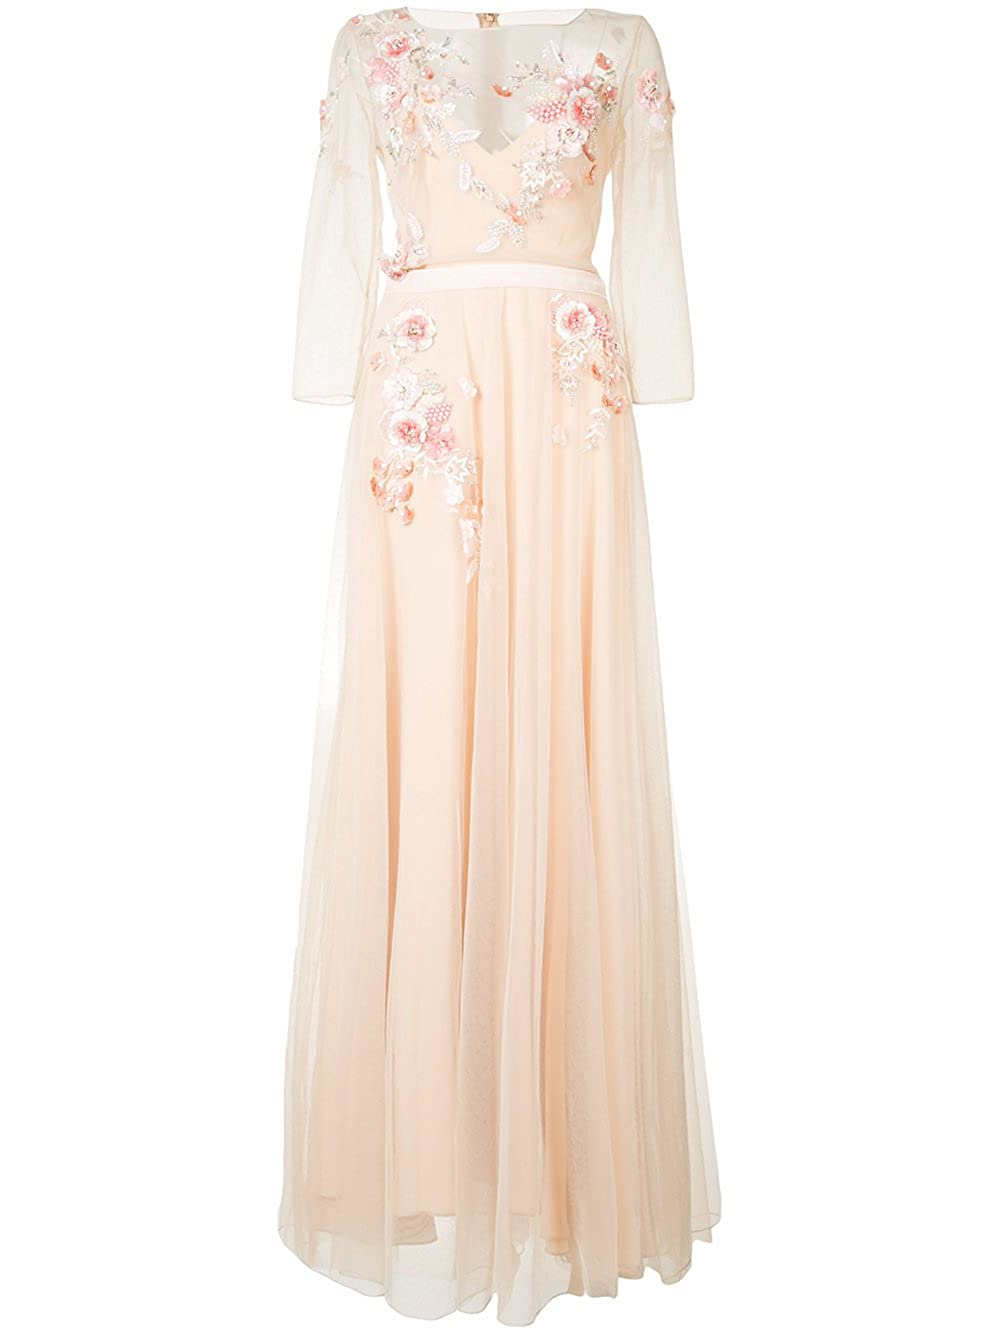 44232a1aa657 Top1: Marchesa Notte Women\'s 3/4 Sleeve Beaded Tulle Evening Gown